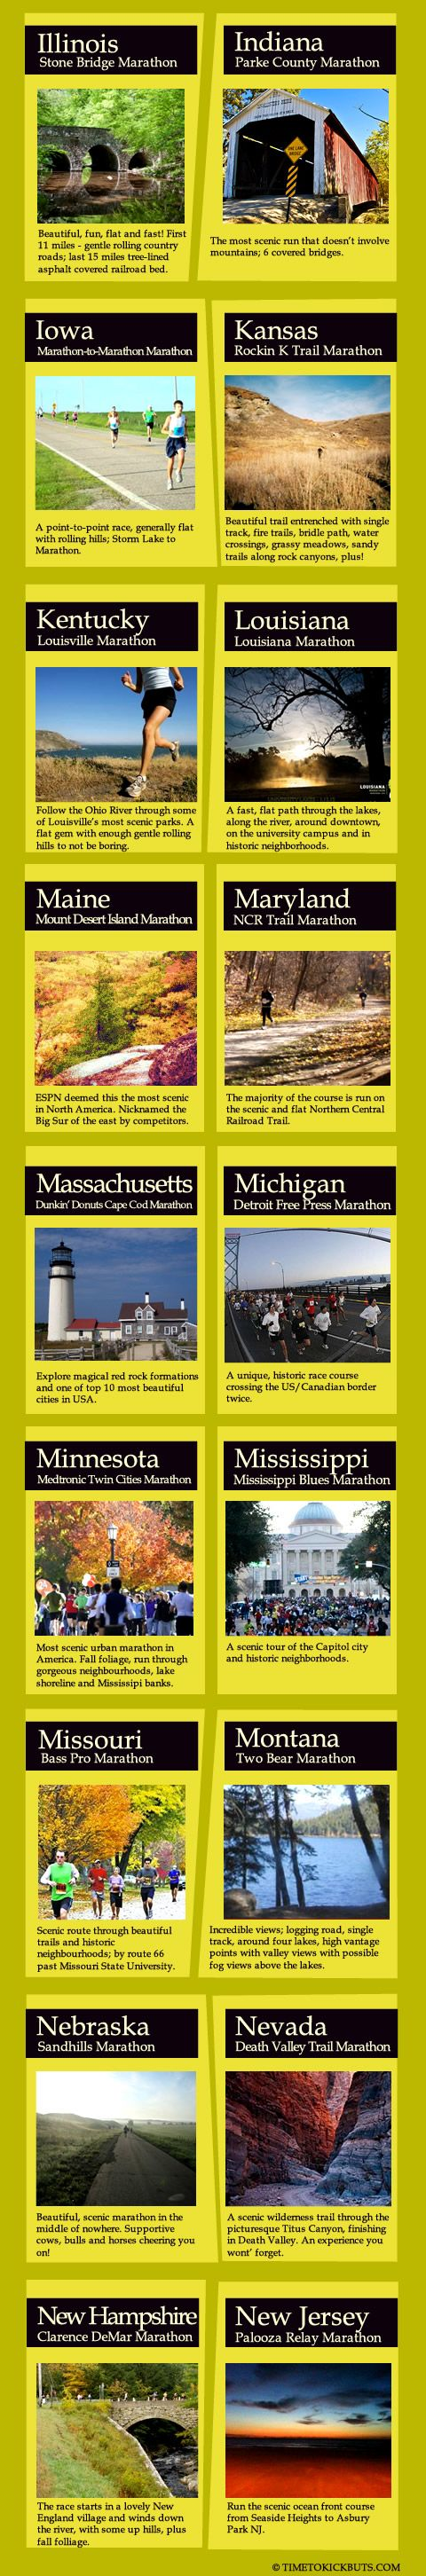 If running a marathon in every state is on your bucket list, then look no further. We found this neat little infographic that showcases the 50 most beautiful runs in each of the country's sta…